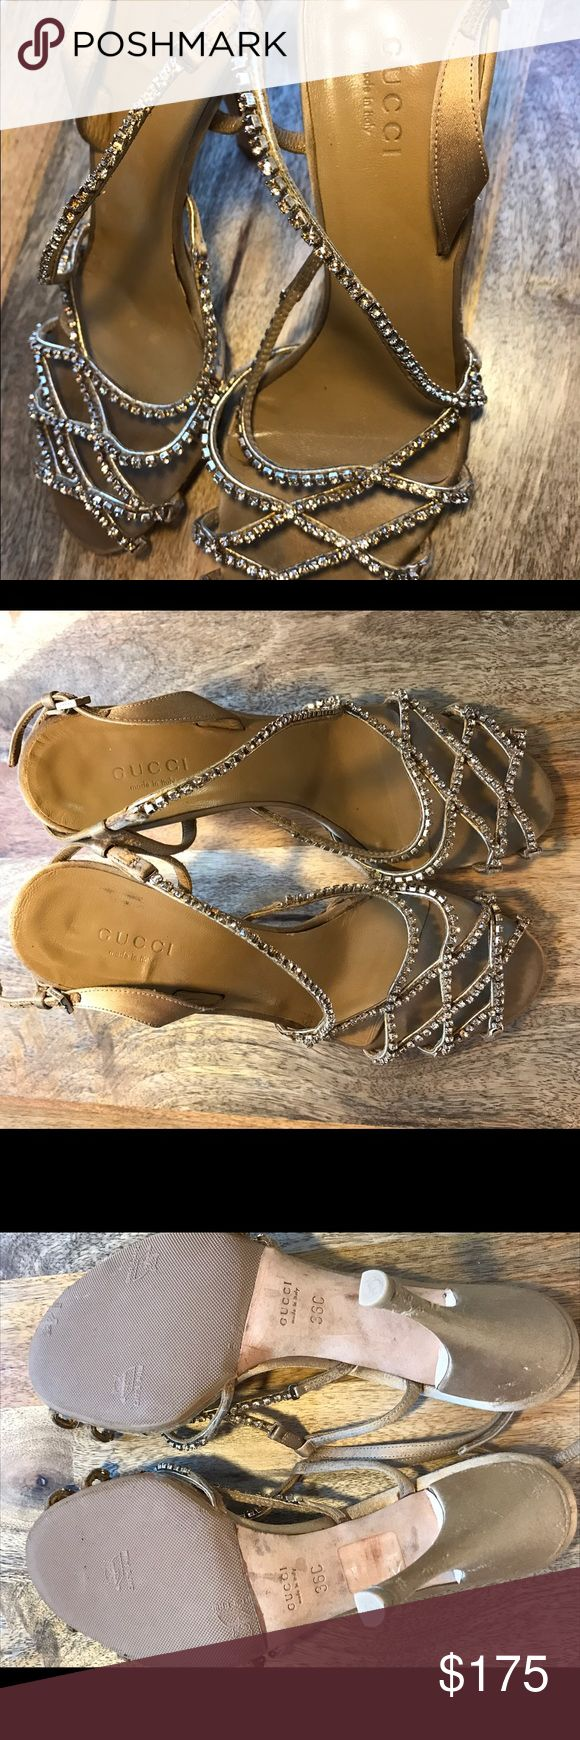 Gucci Rhinestone Satin Evening sandals / Heels Worn a few times for weddings and work events. Timeless and comfortable. Genuine Italian crafted Gucci gold (or tan shimmer) evening sandal with Swarovski rhinestone and satin sandals. Size 36C. Low price for missing rhinestones. Gucci Shoes Sandals